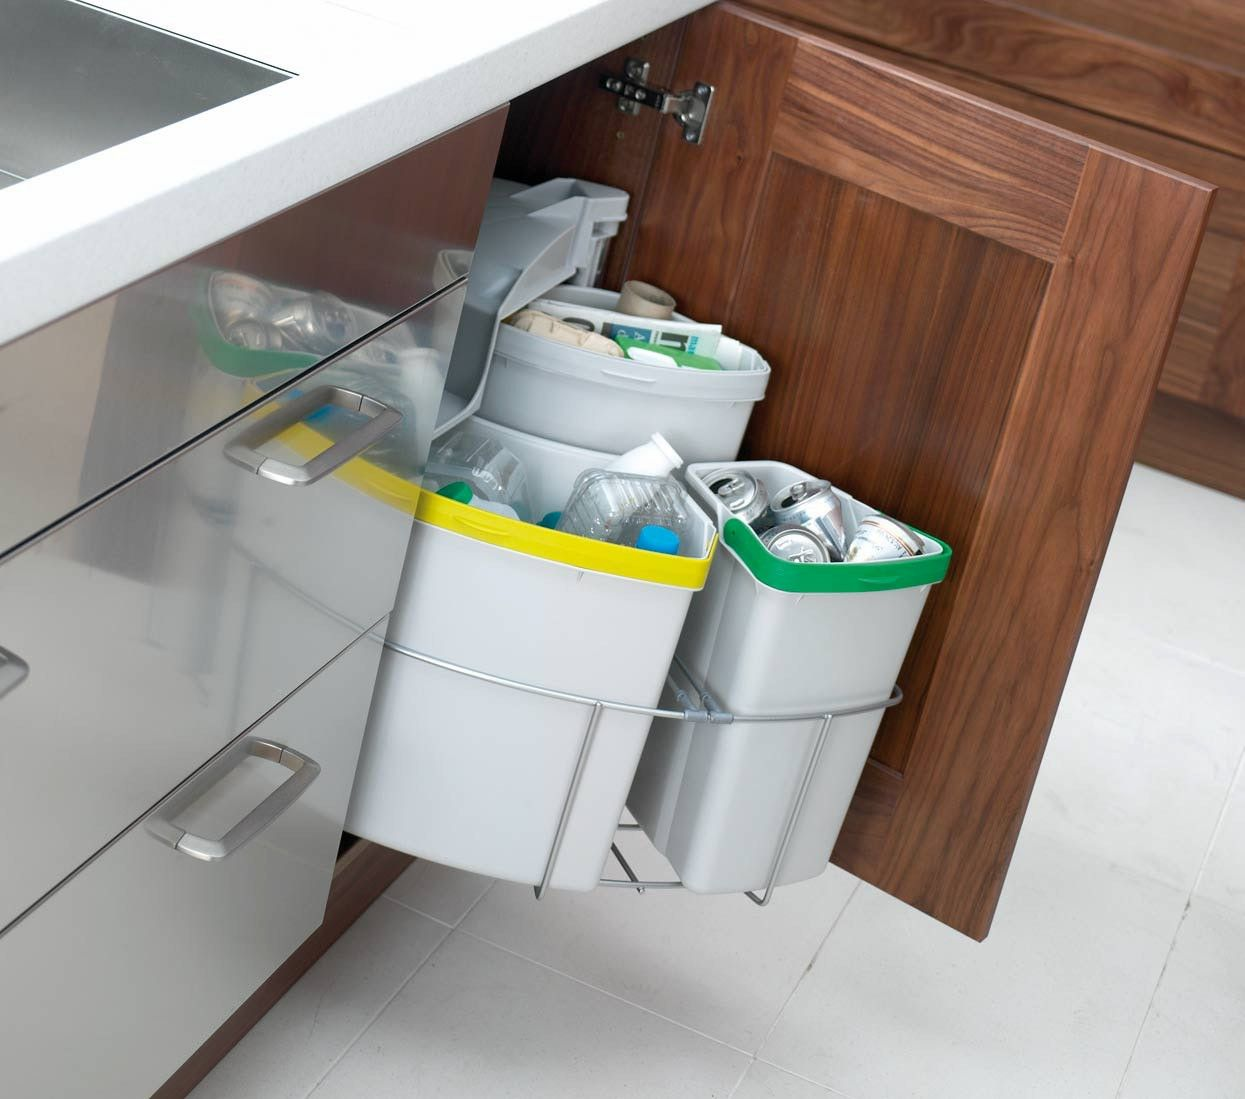 99 kitchen recycling bins for cabinets kitchen cabinets storage ideas check more at htt on kitchen organization recycling id=83513